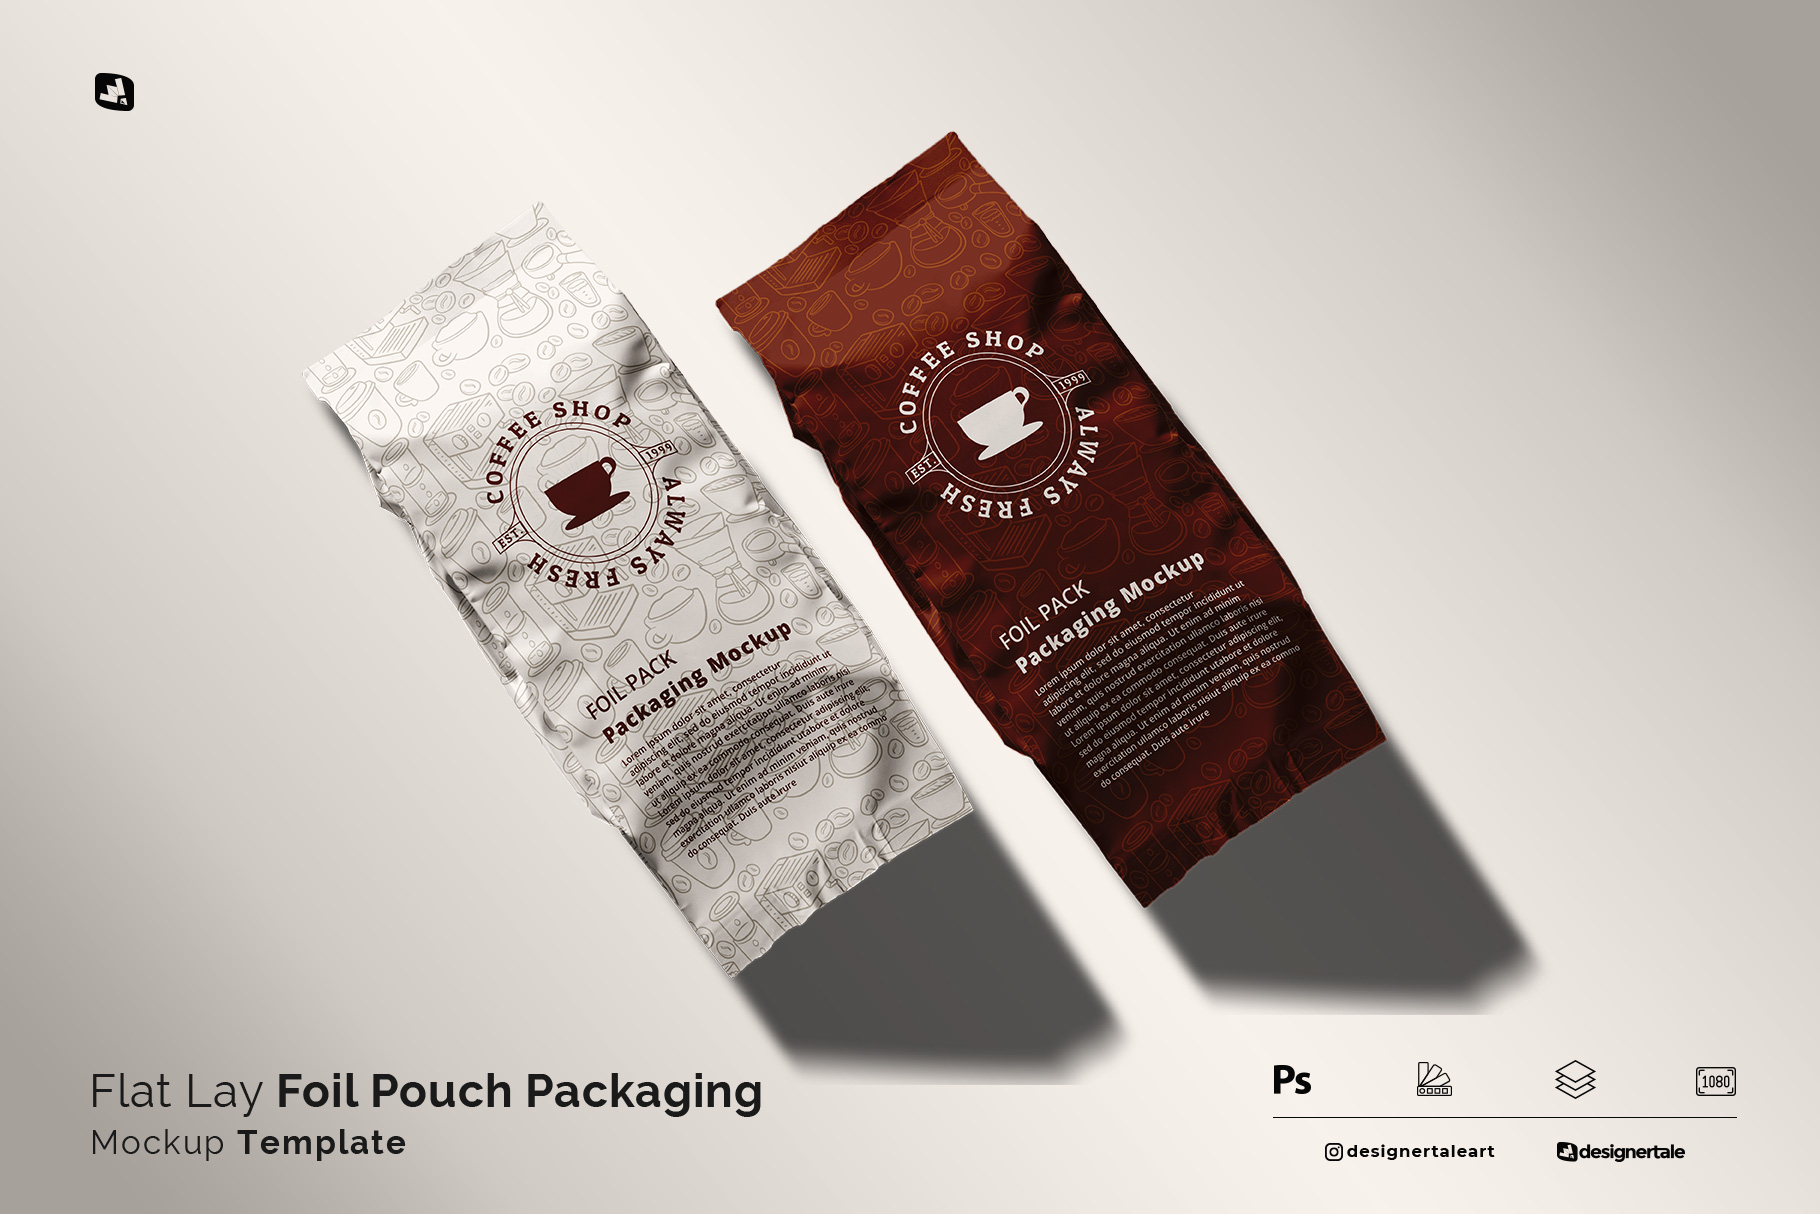 flat lay foil pouch packaging mockup